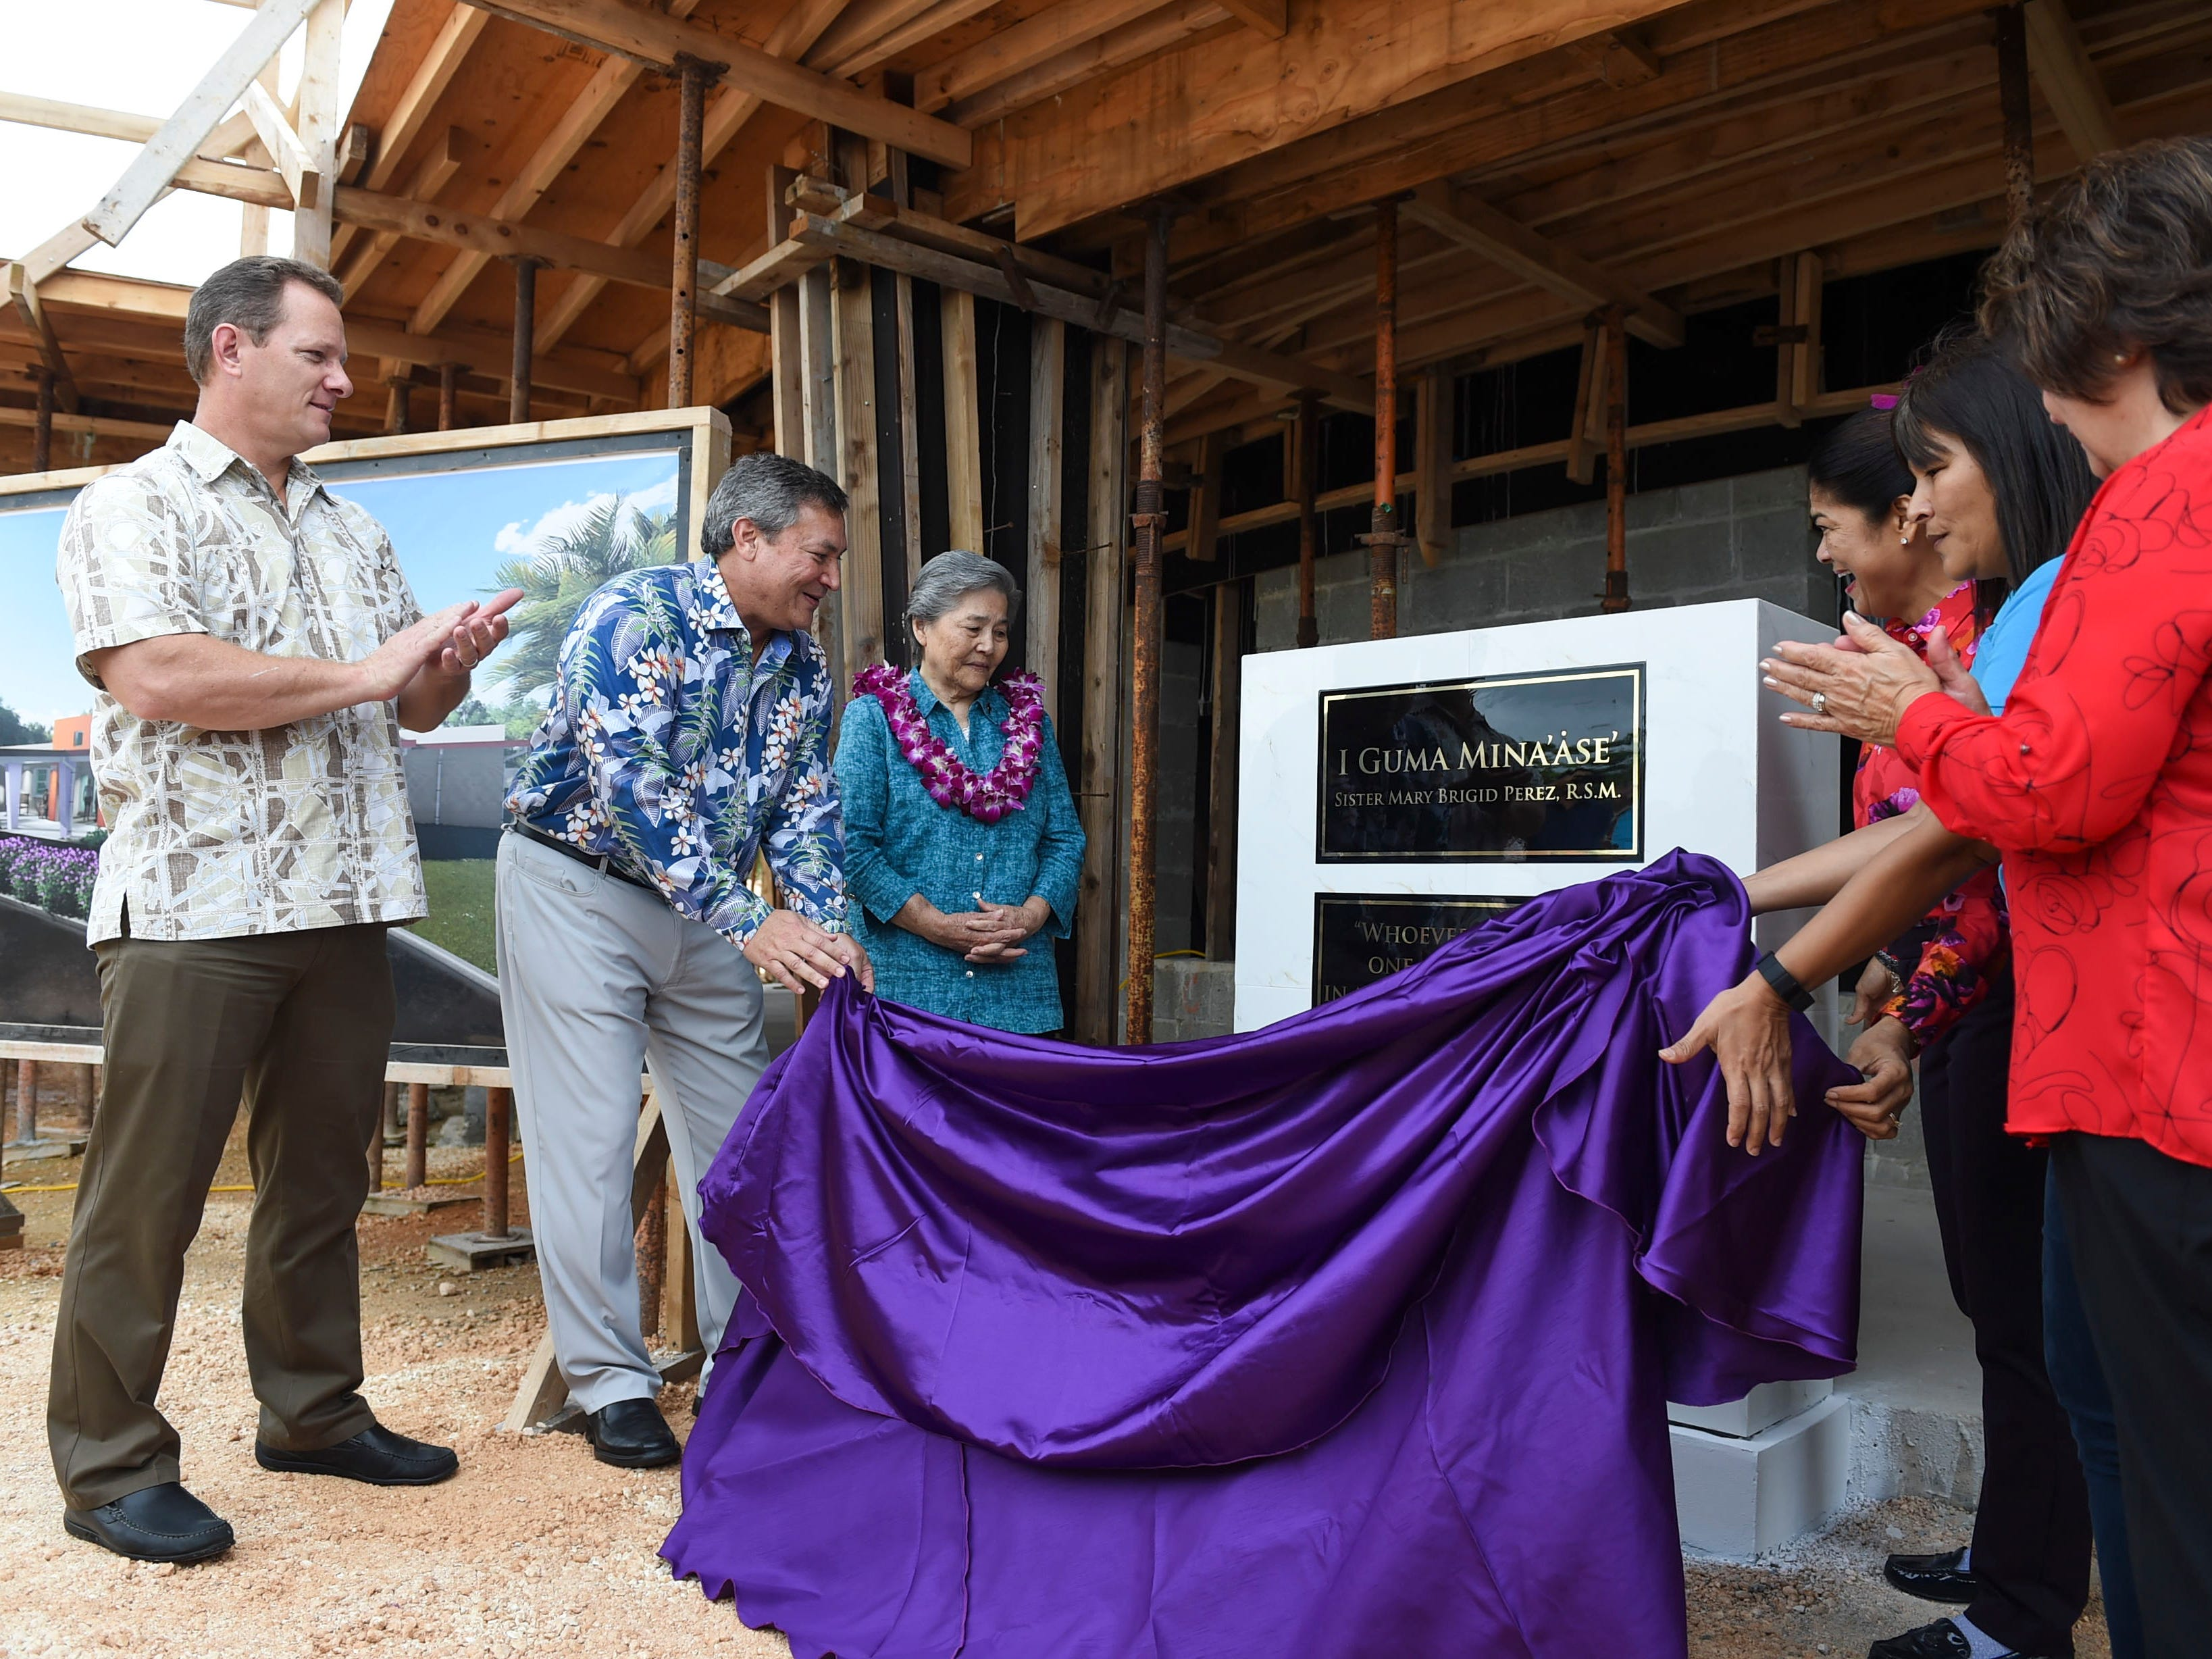 Dignitaries unveil a plaque dedicated to Sister Mary Brigid Perez, center, during a dedication ceremony for the redesignation of the former Rigålu House to I Guma Mina'åse' Sister Mary Brigid Perez, R.S.M. in Barrigada on Dec. 31, 2018.